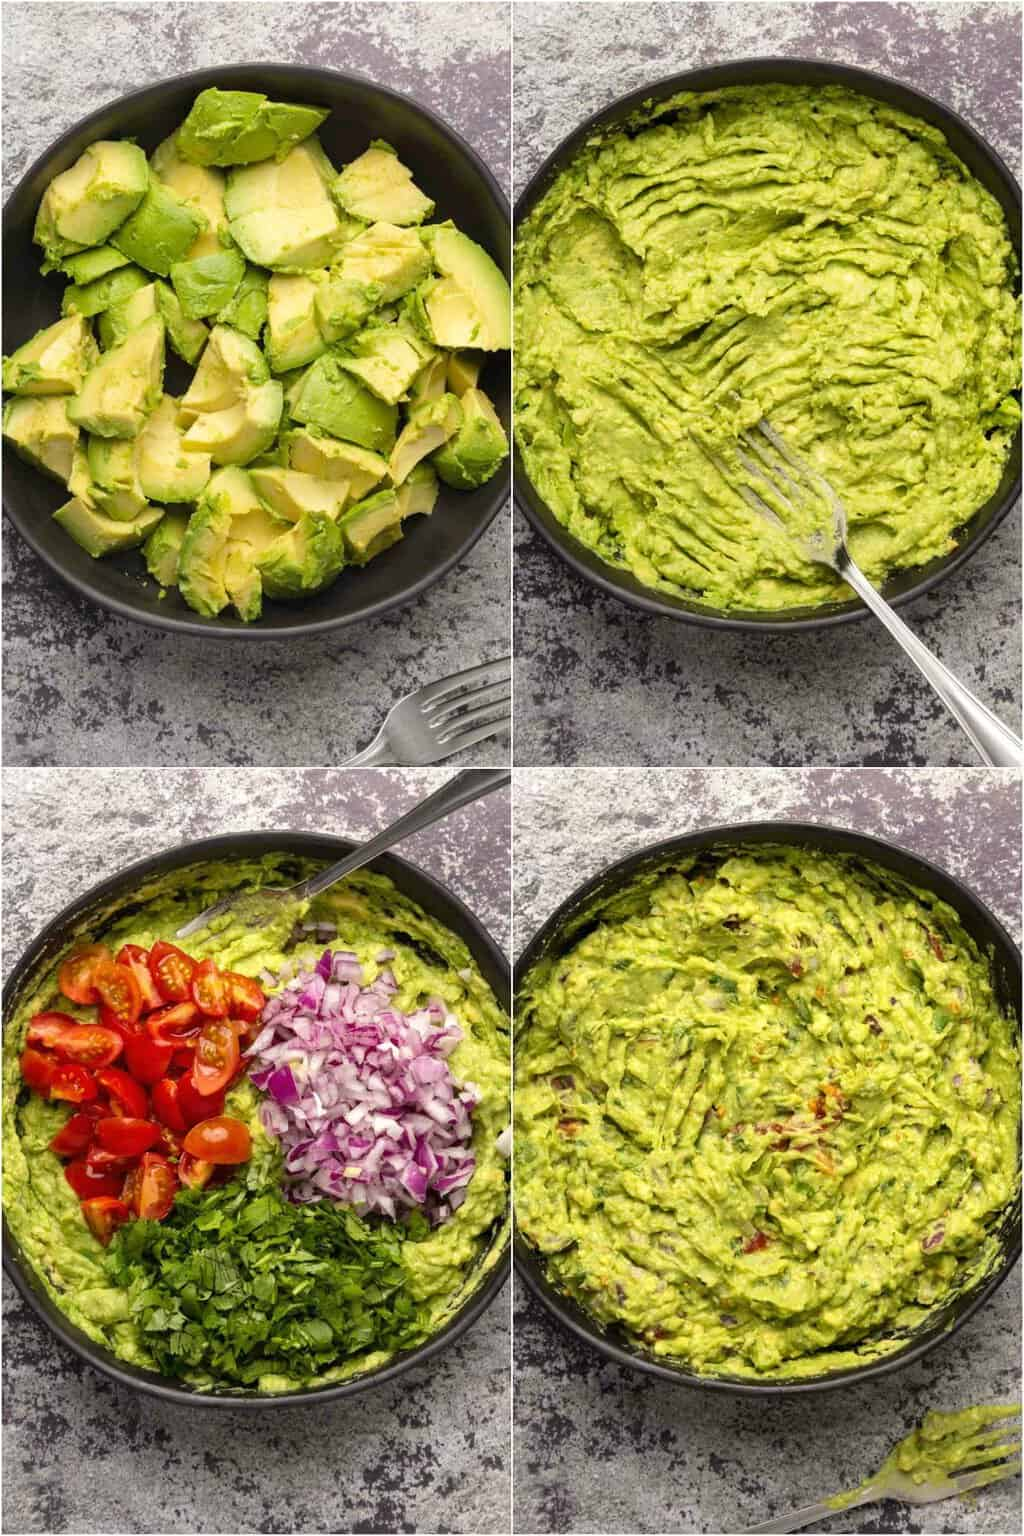 Step by step process photo collage of making vegan guacamole.